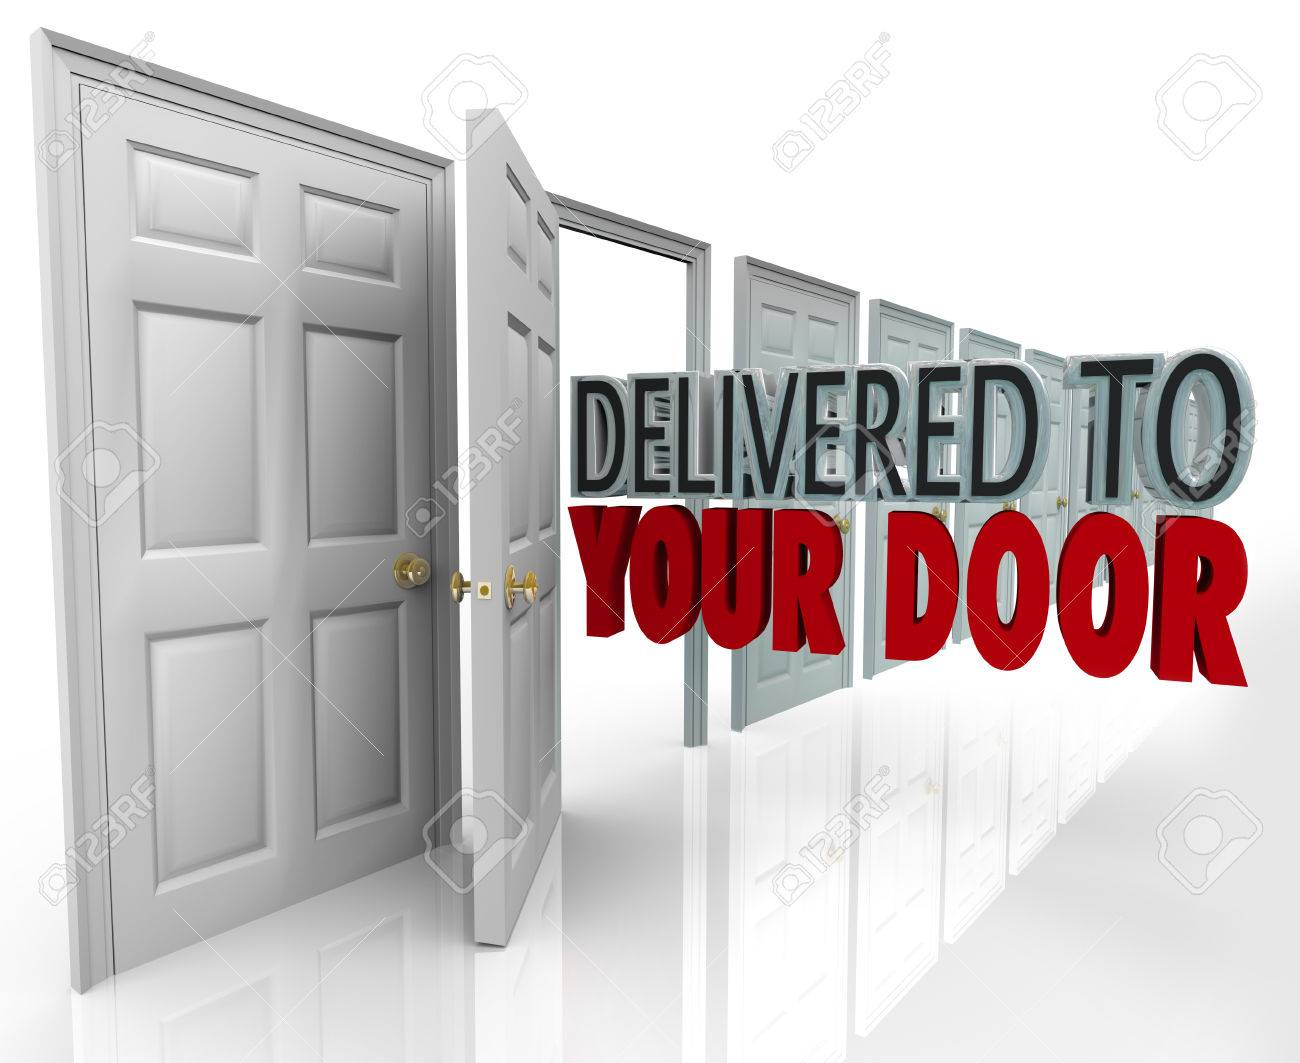 Delivered to Your Door words coming out open doorway to symbolize special expedited service such as